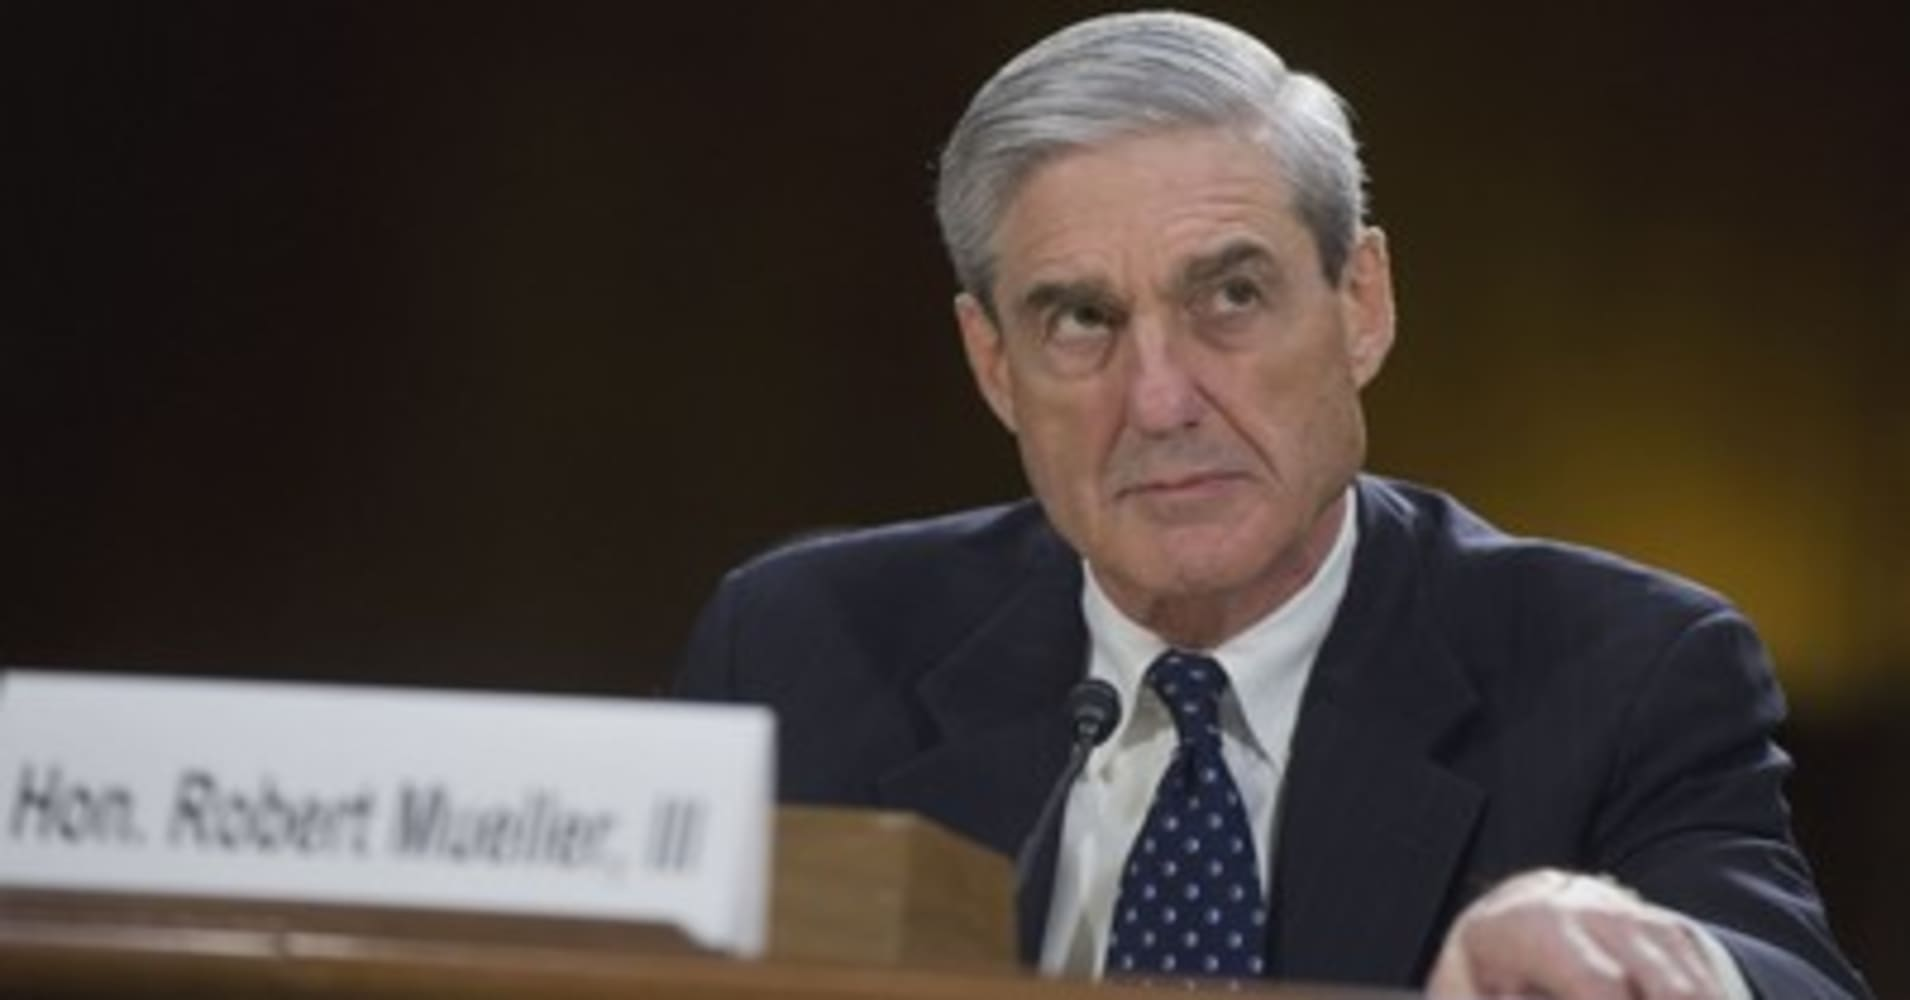 Special counsel Robert Mueller accuses opponents of offering women money to make 'false claims' about him